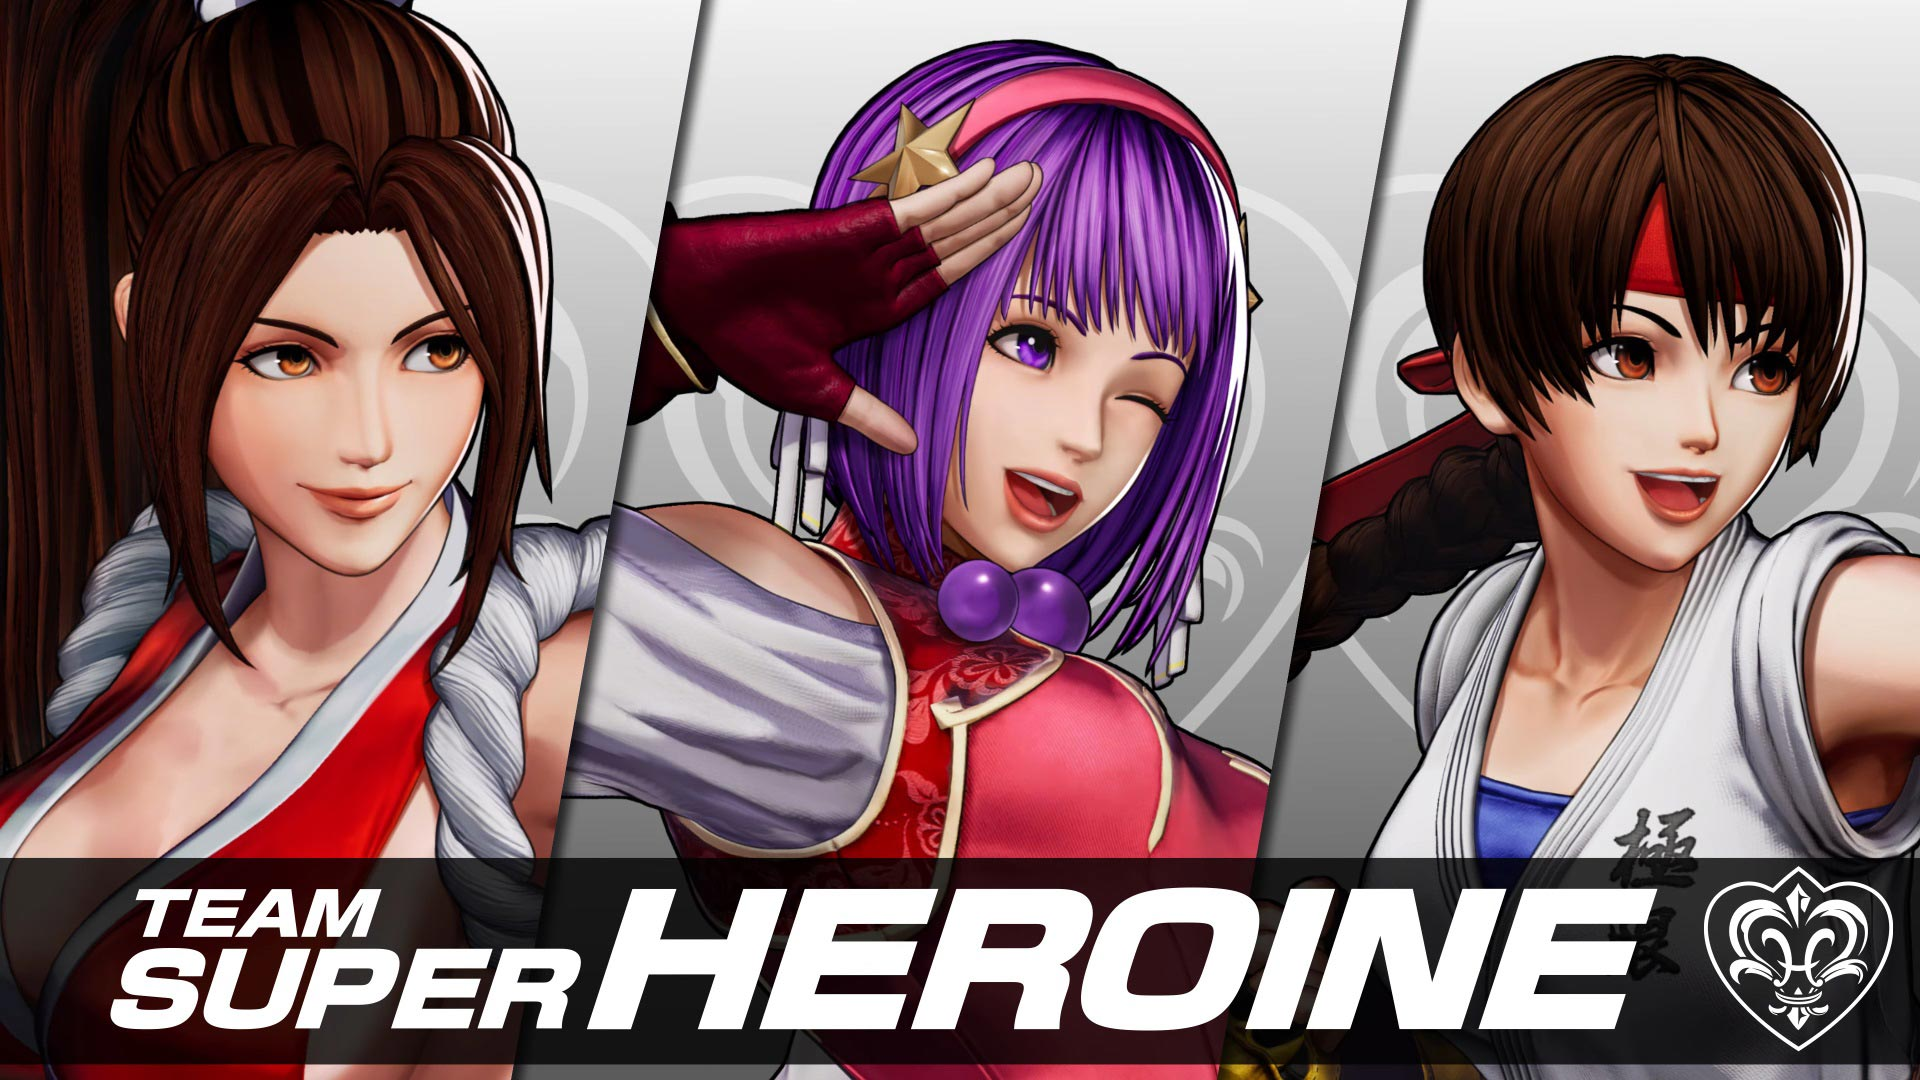 Athena Asamiya in King of Fighters 15 6 out of 6 image gallery